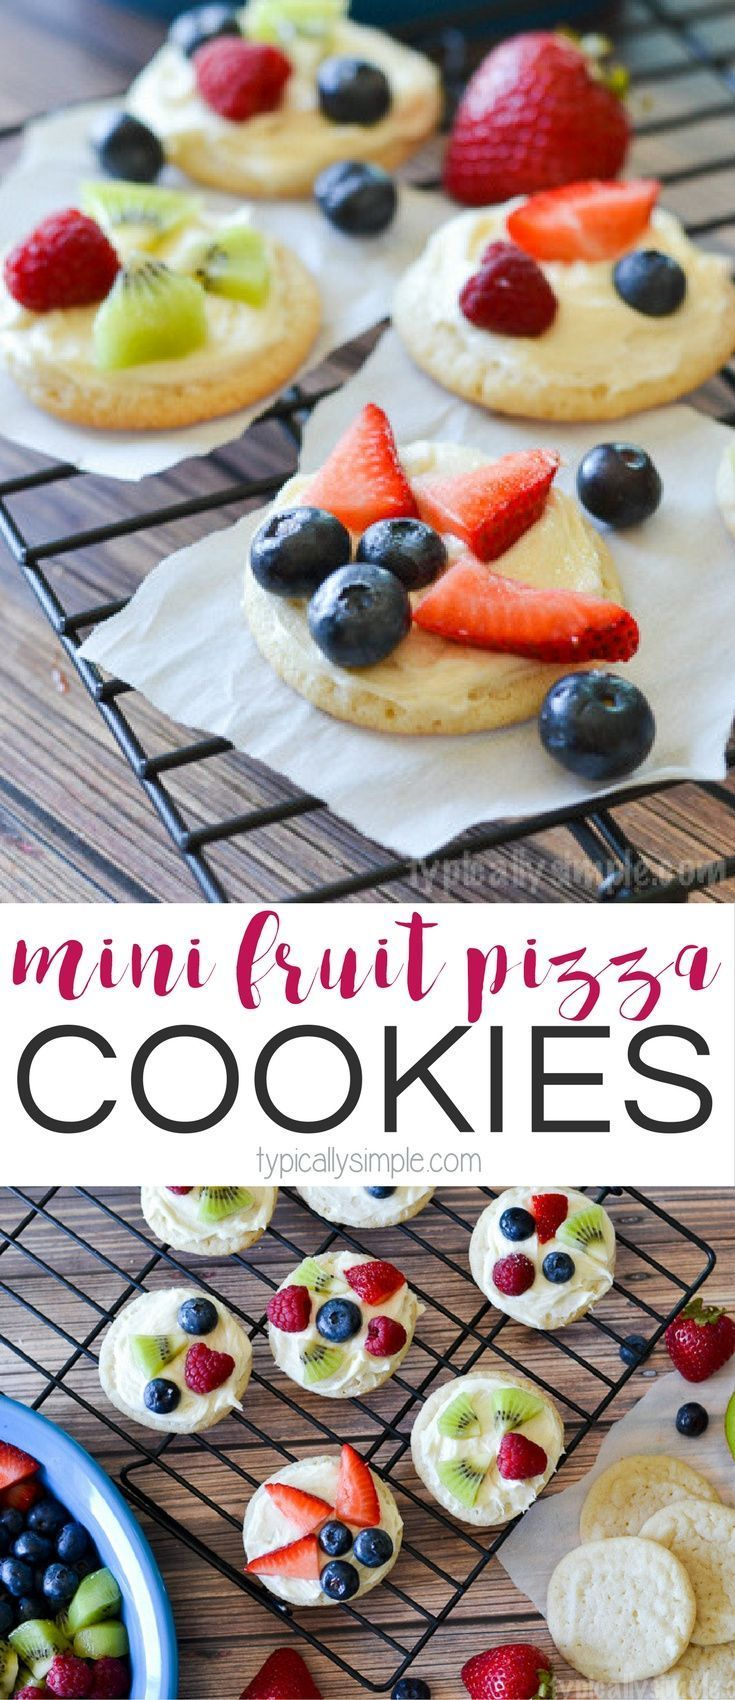 Fruit splash story - A Simple Dessert That Only Requires A Few Ingredients These Mini Fruit Pizza Cookies Are